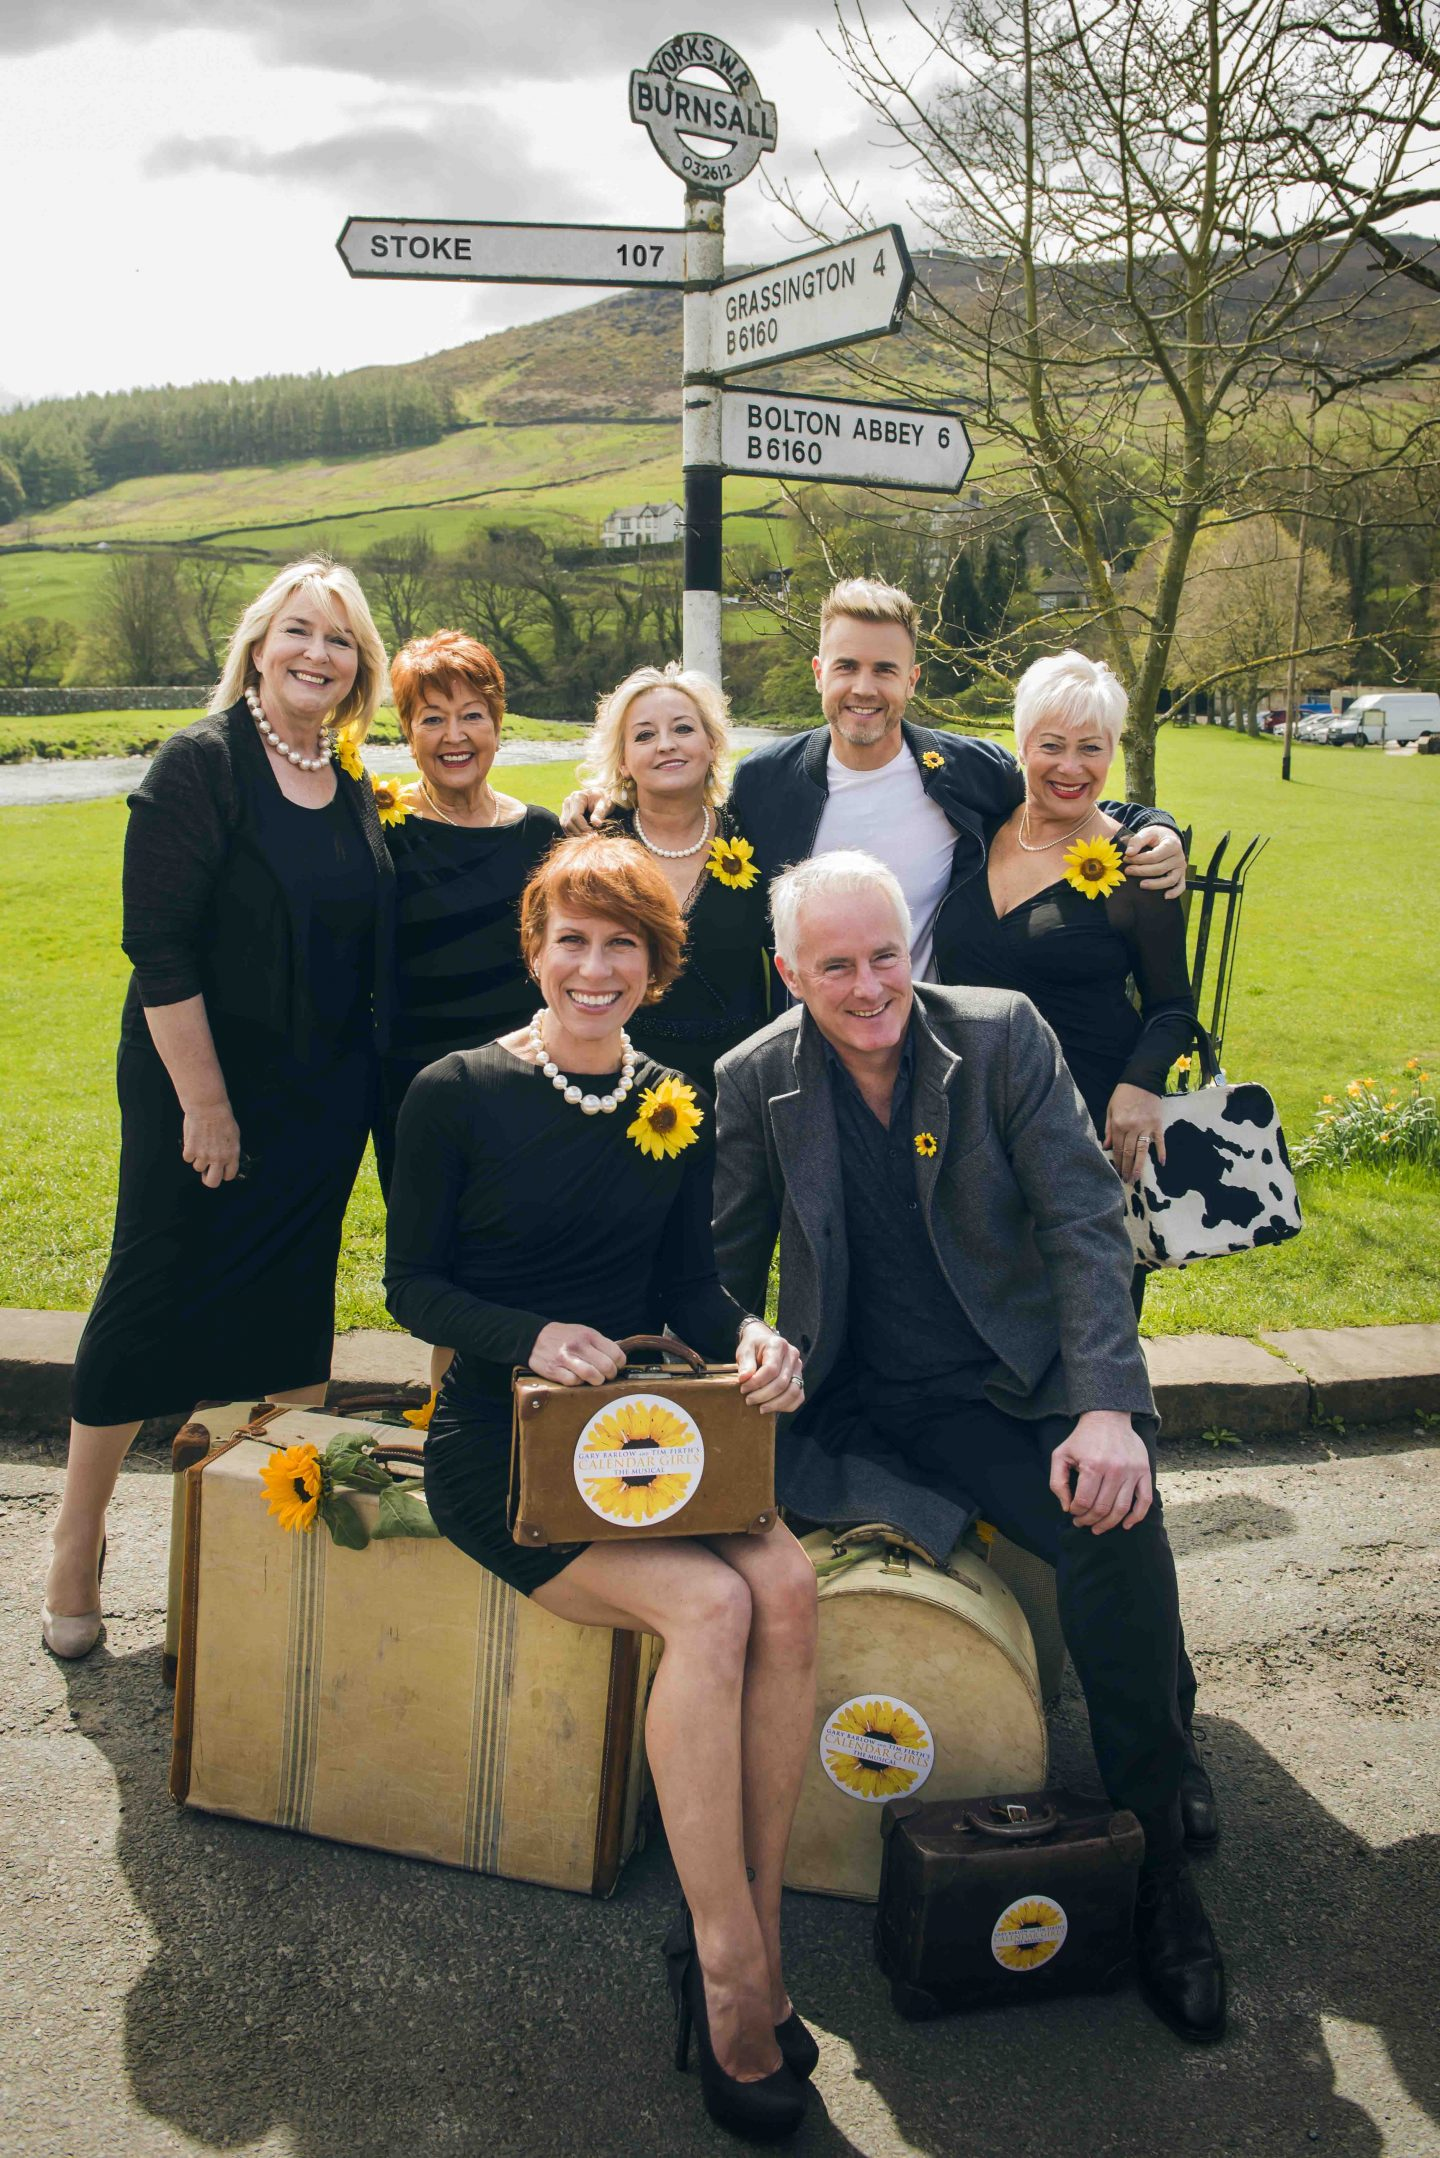 Calendar Girls The Musical is heading to The Regent Theatre